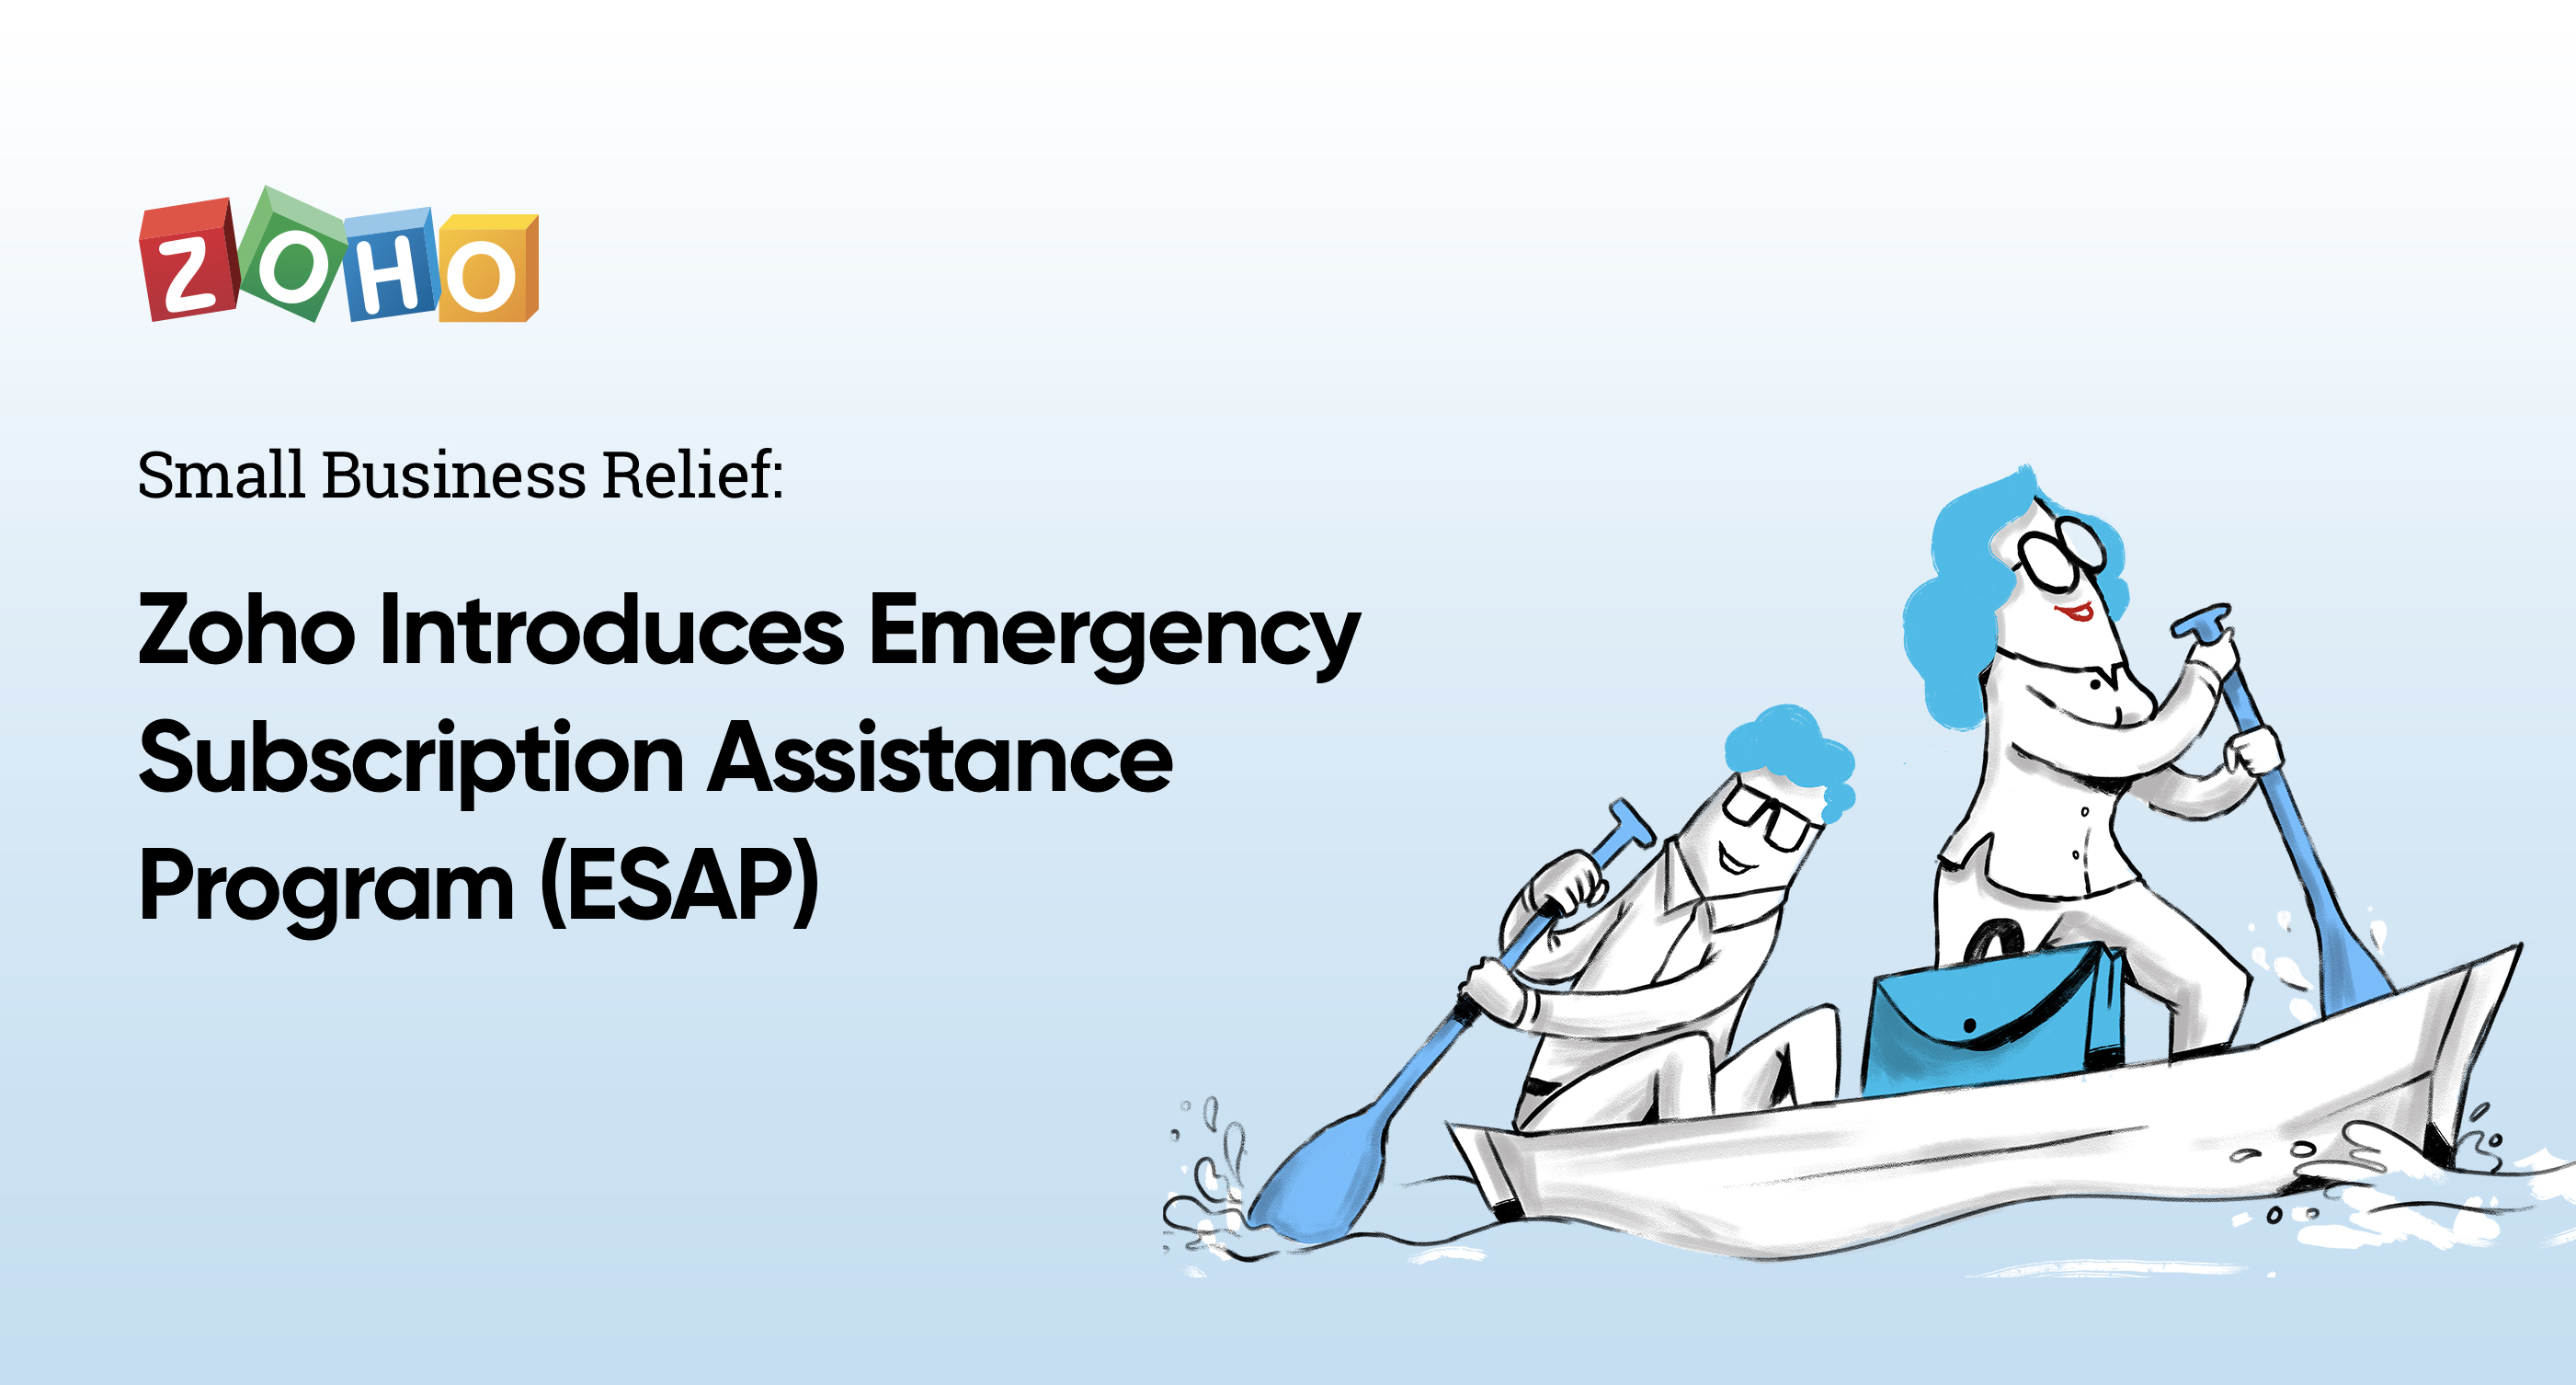 Small Business Relief: Zoho Introduces Emergency Assistance Program